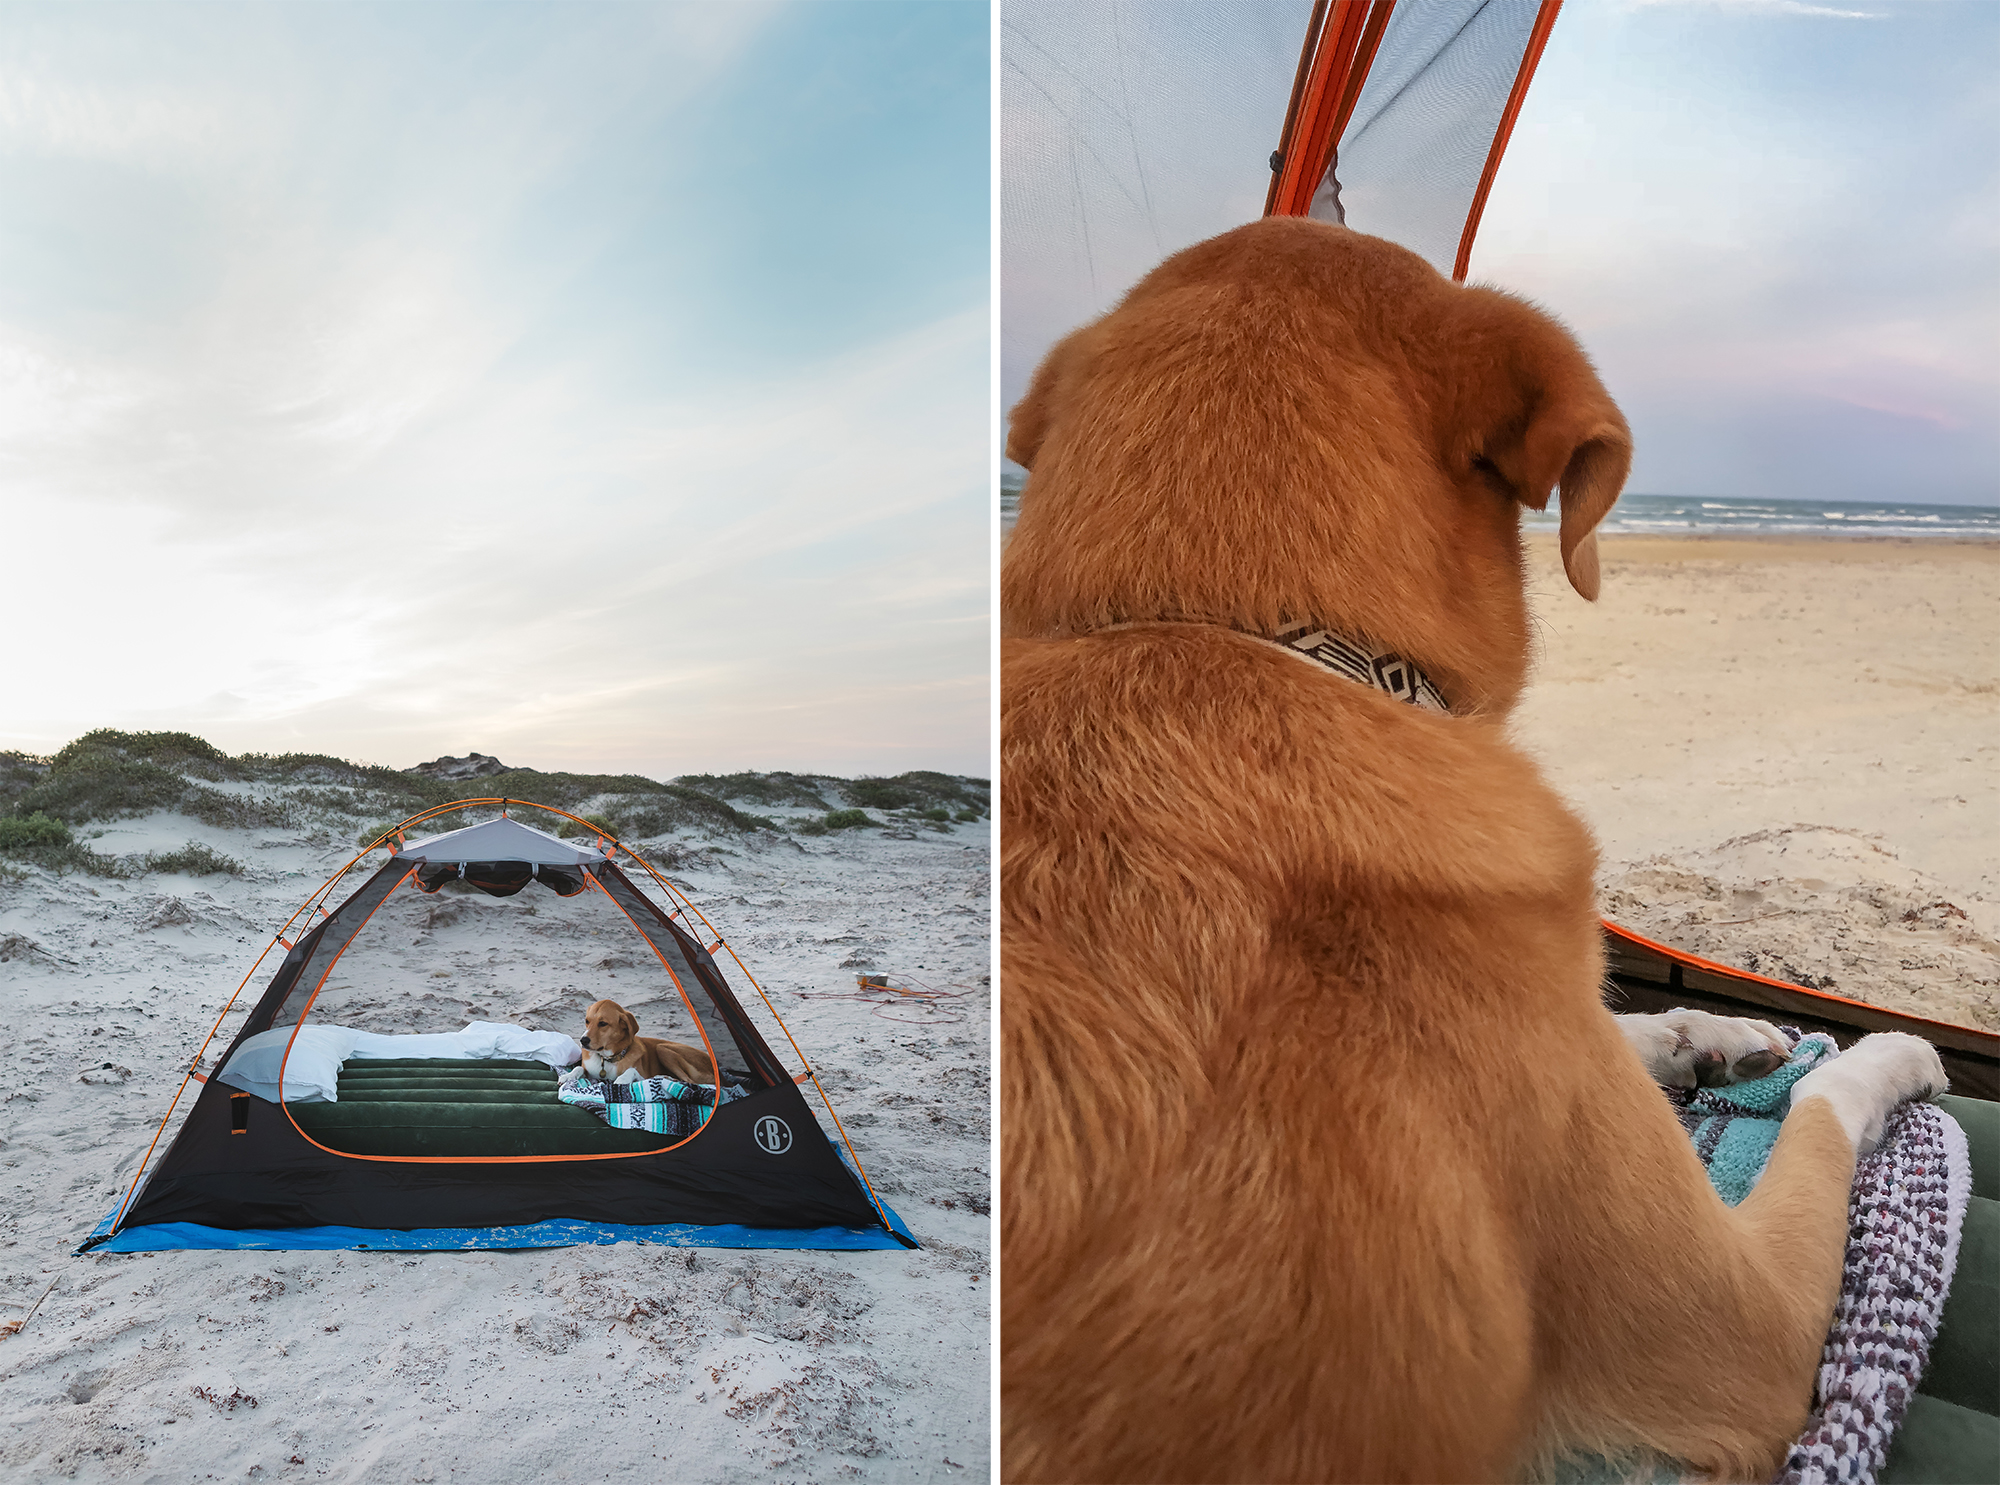 The luxuries of car camping.An airbed. | Padre Island National Seashore, Texas | June 2018